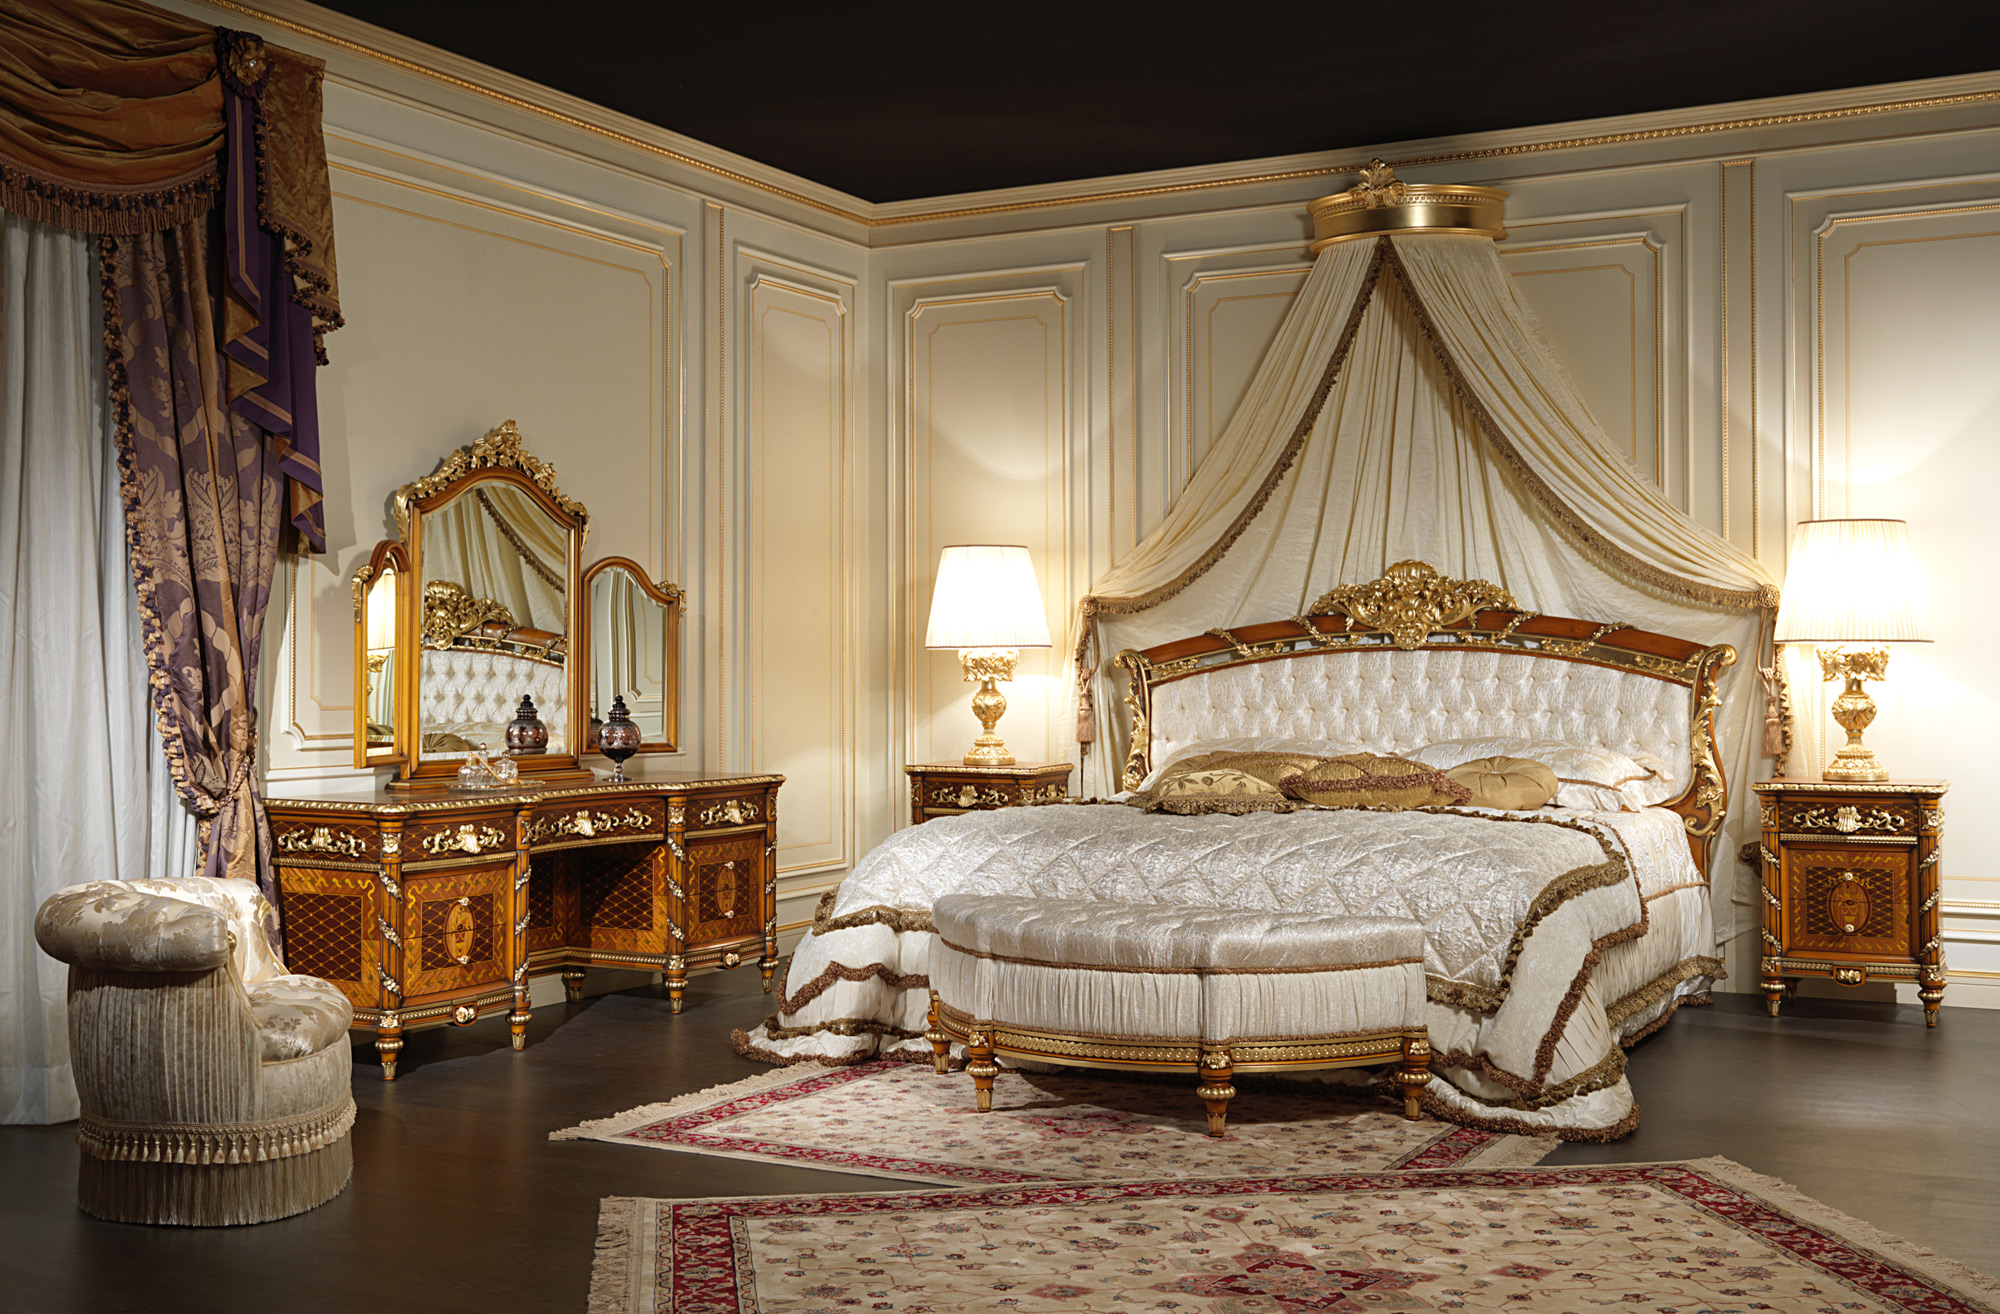 Double Bed In Walnut Art 2011 Vimercati Meda